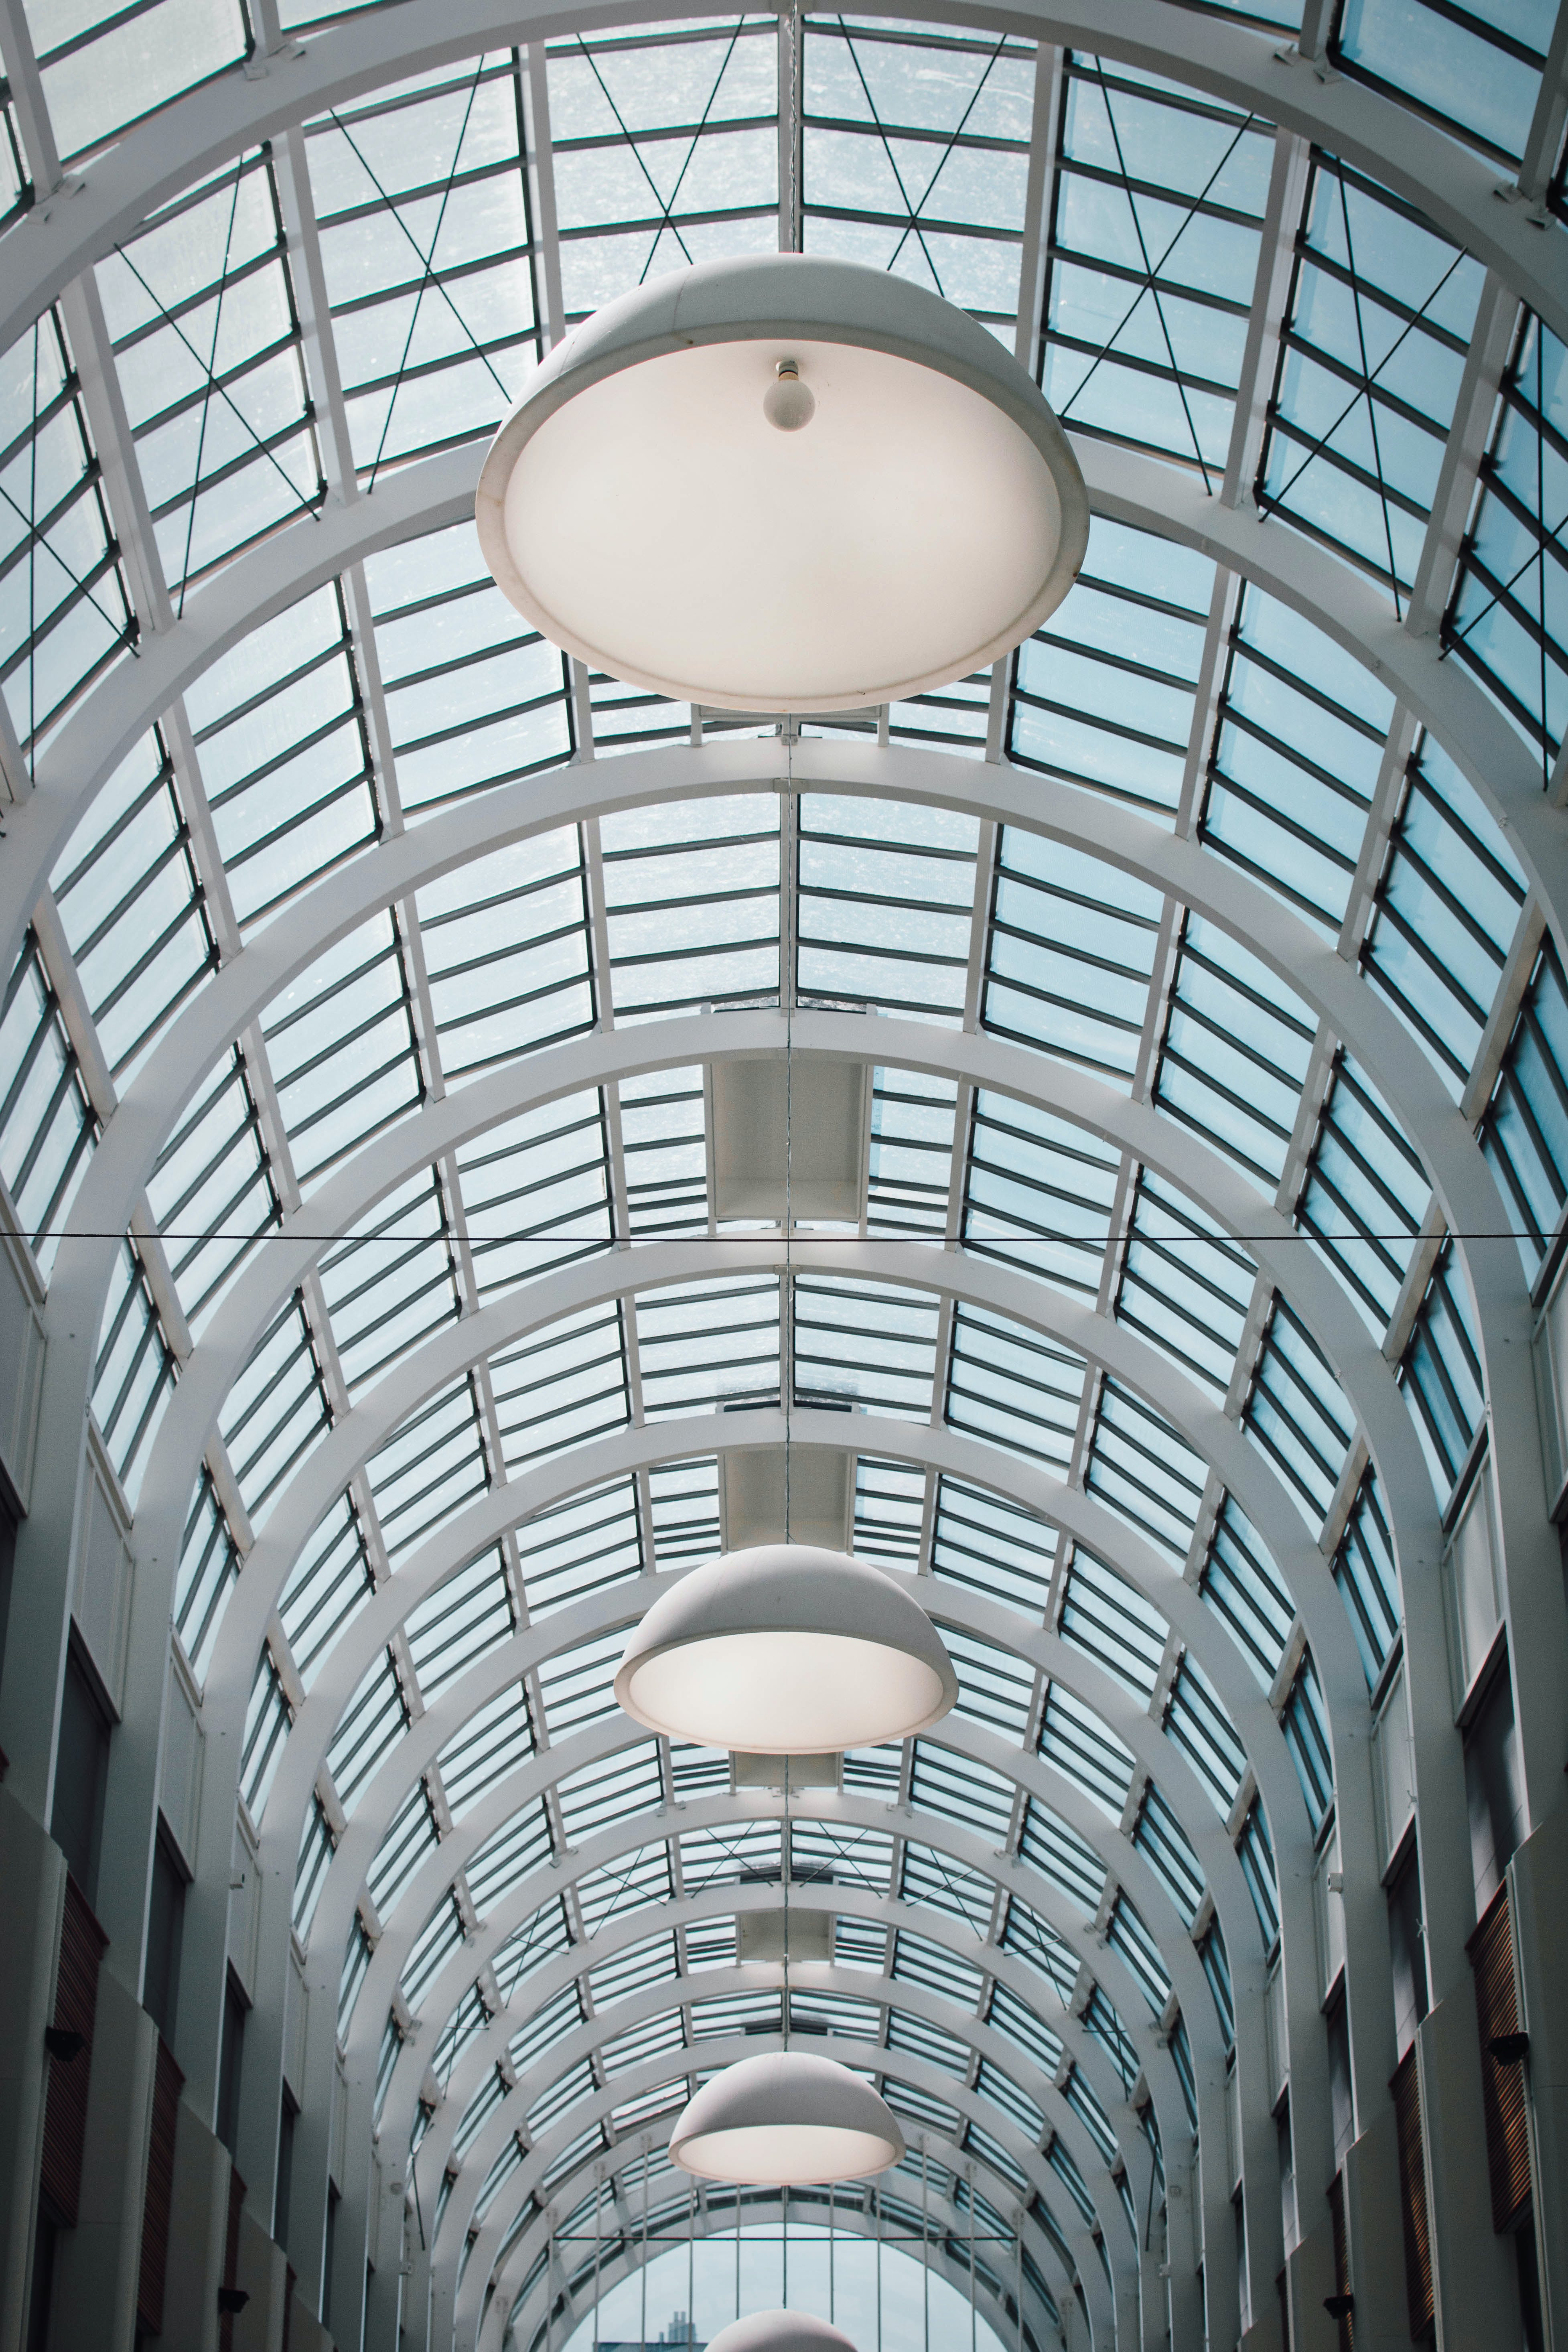 Shallow Focus Photography of Building Ceiling